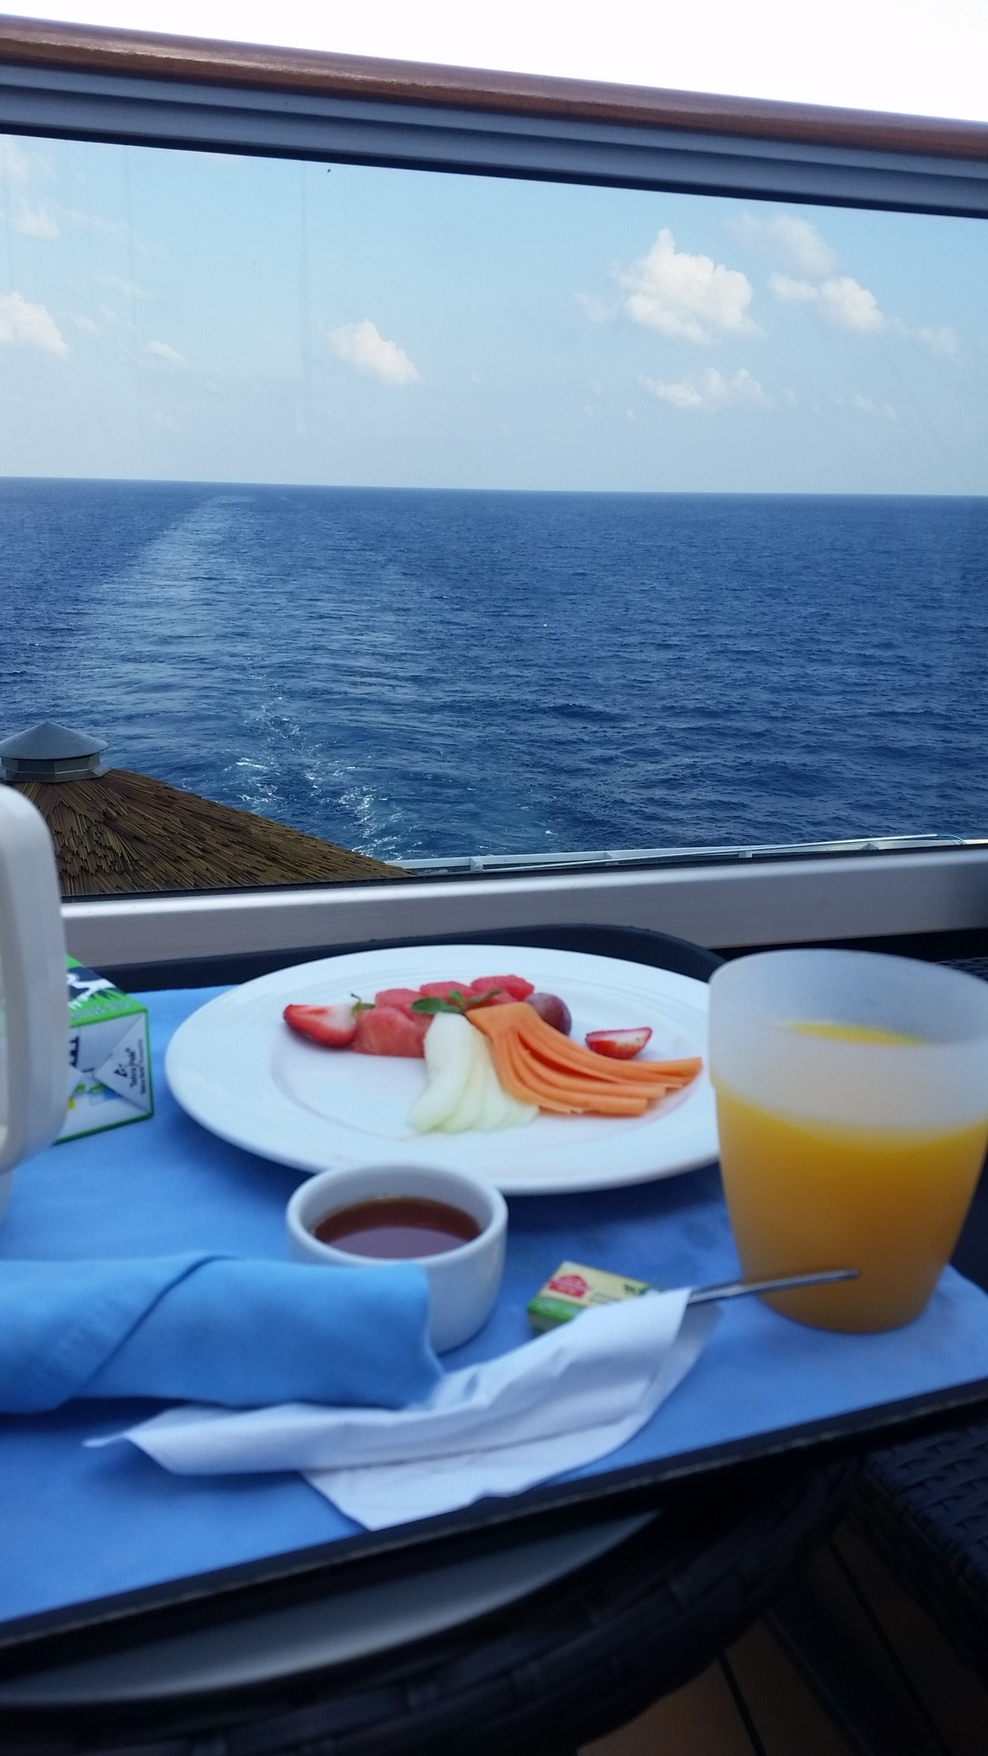 Havanna aft ext balcony room service. Breakfast with a view